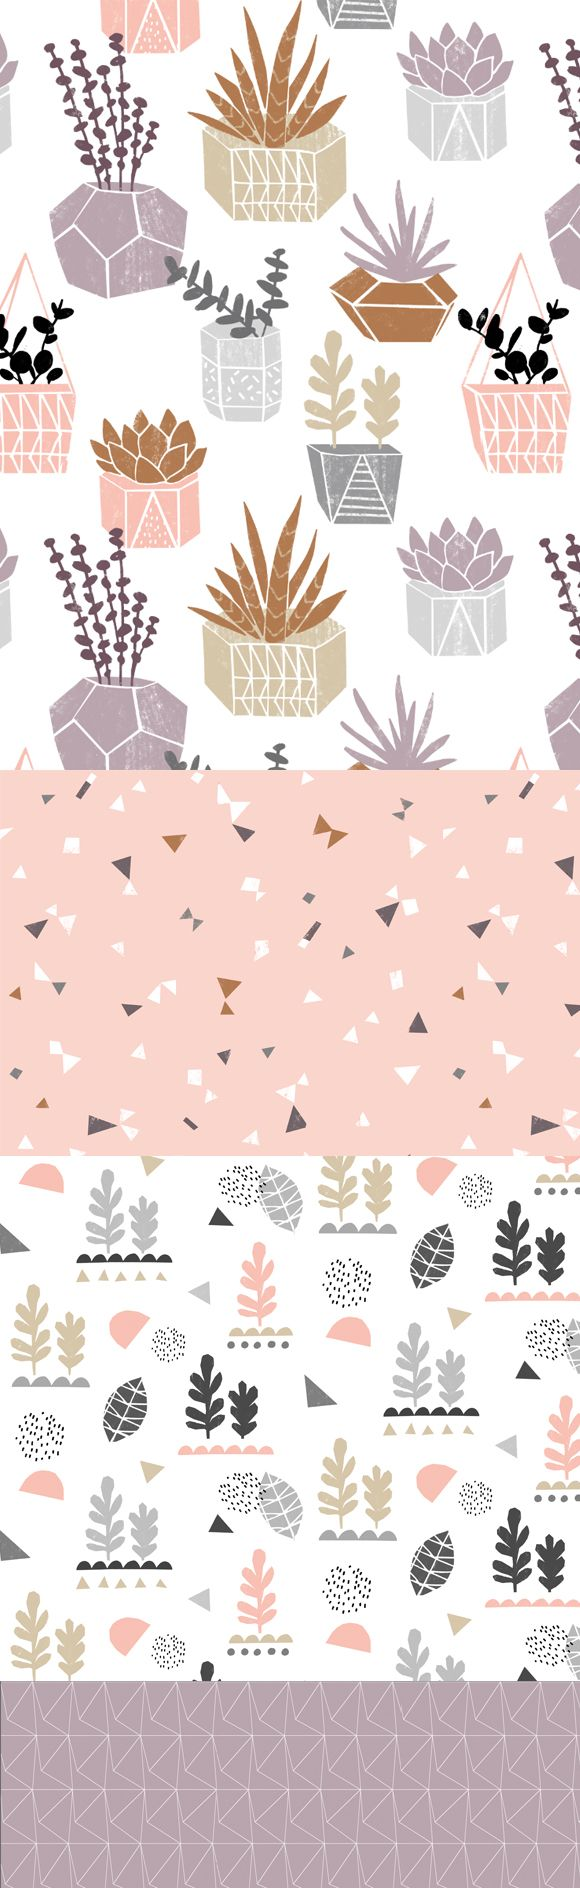 wendy kendall designs – freelance surface pattern designer » plantlife_doc